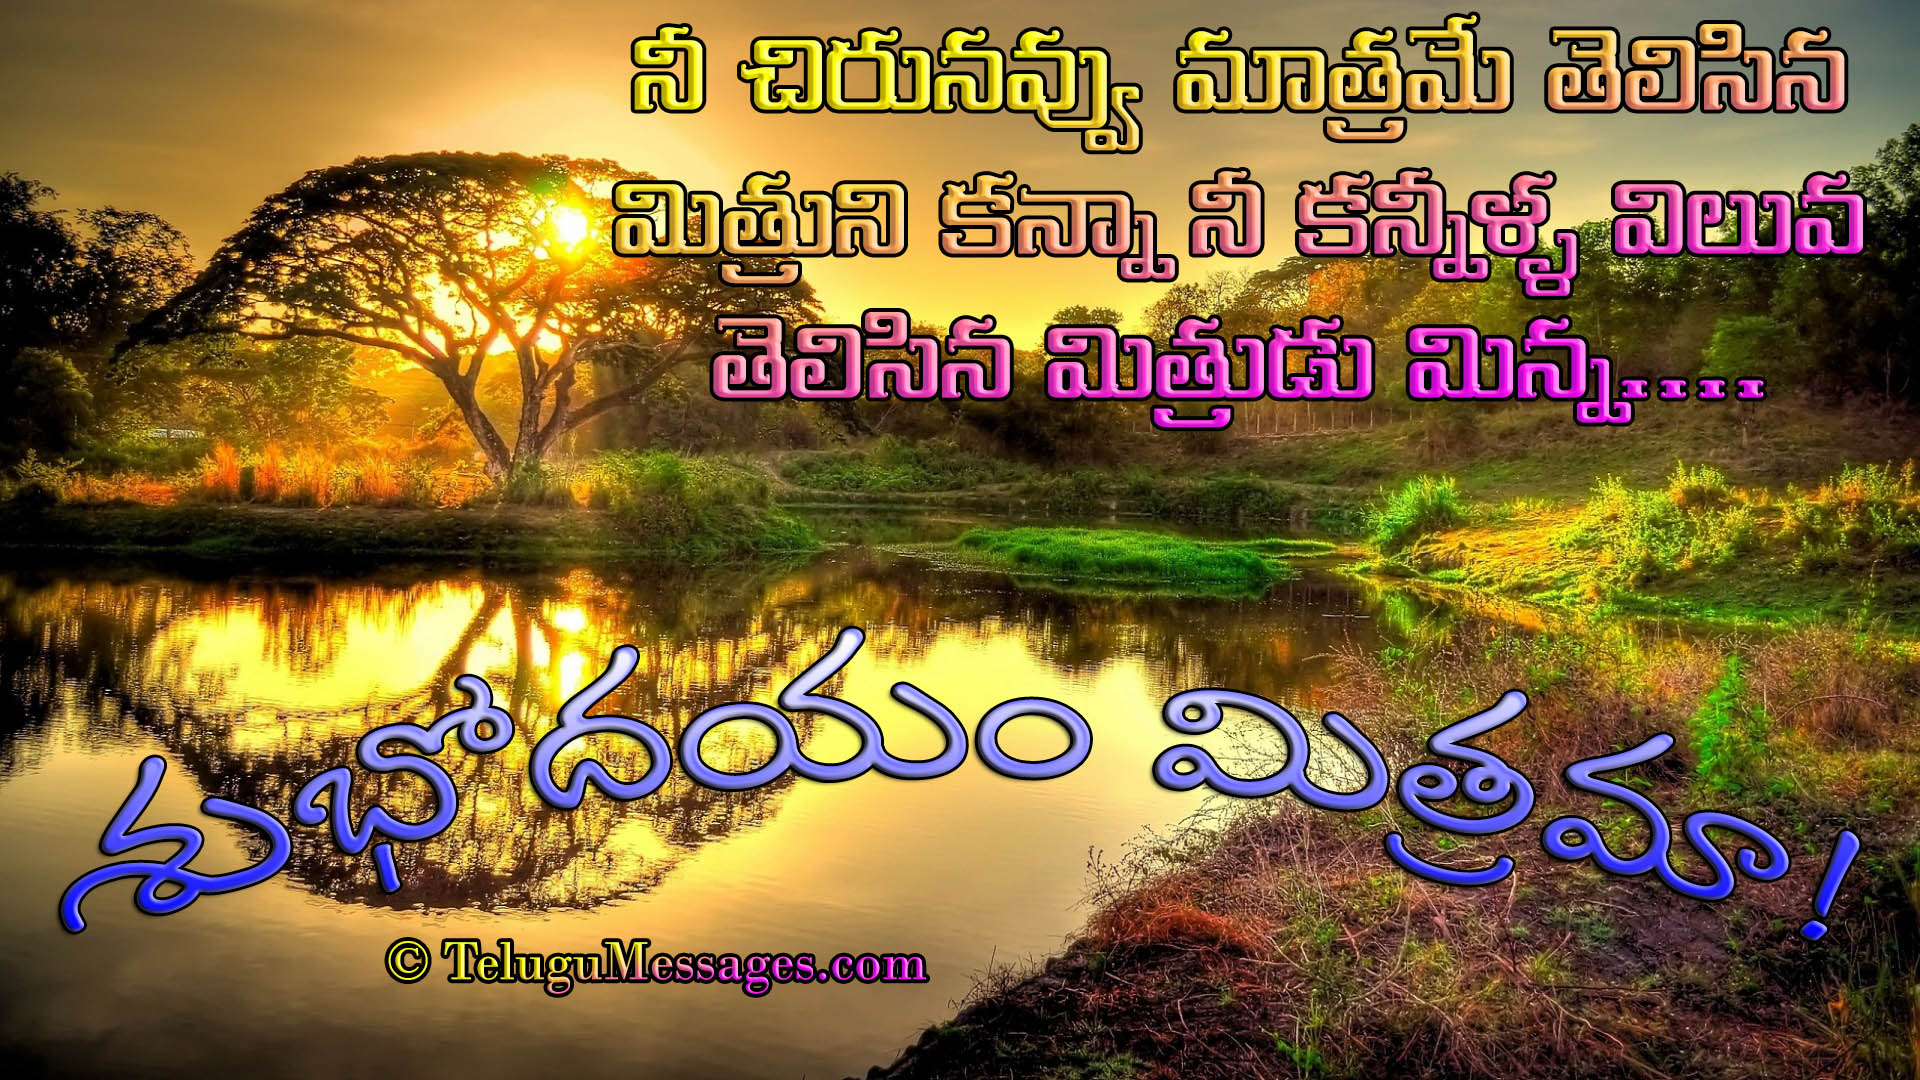 Quotes Morning Telugu Good Morning Quotes Good Night Good Evening Pictures